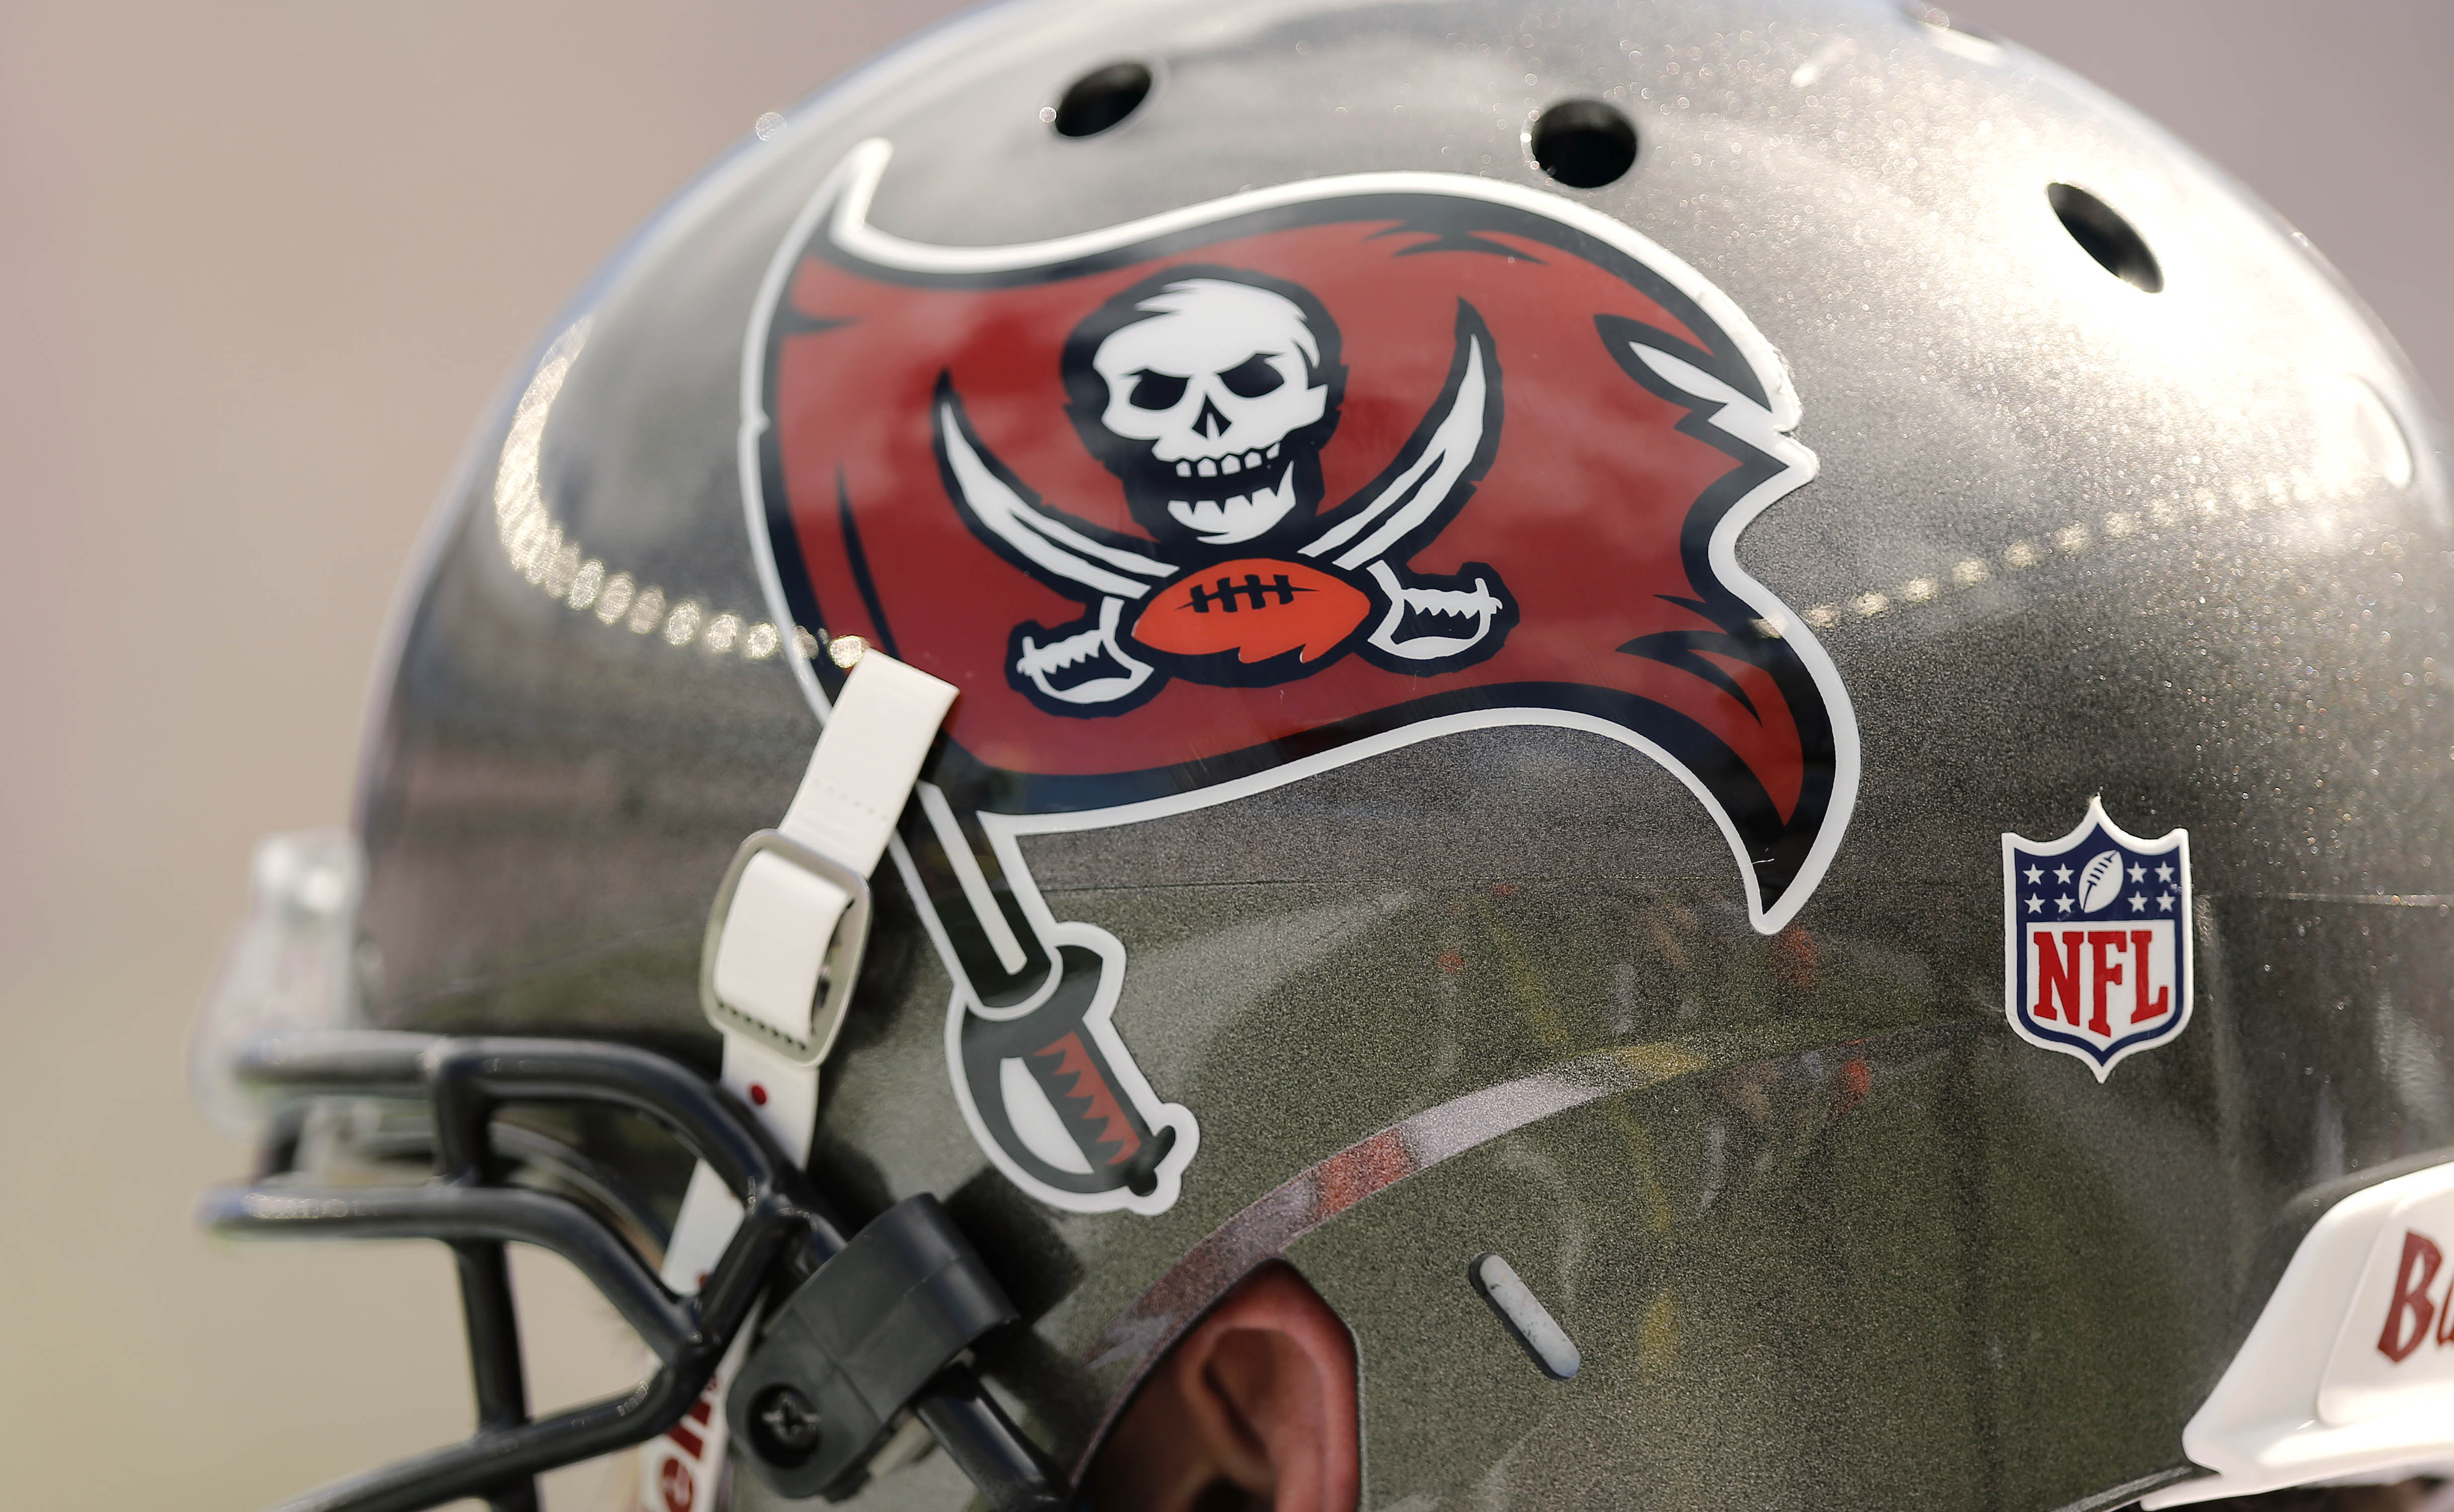 Tampa Bay Buccaneers new jerseys are what we've all been waiting for